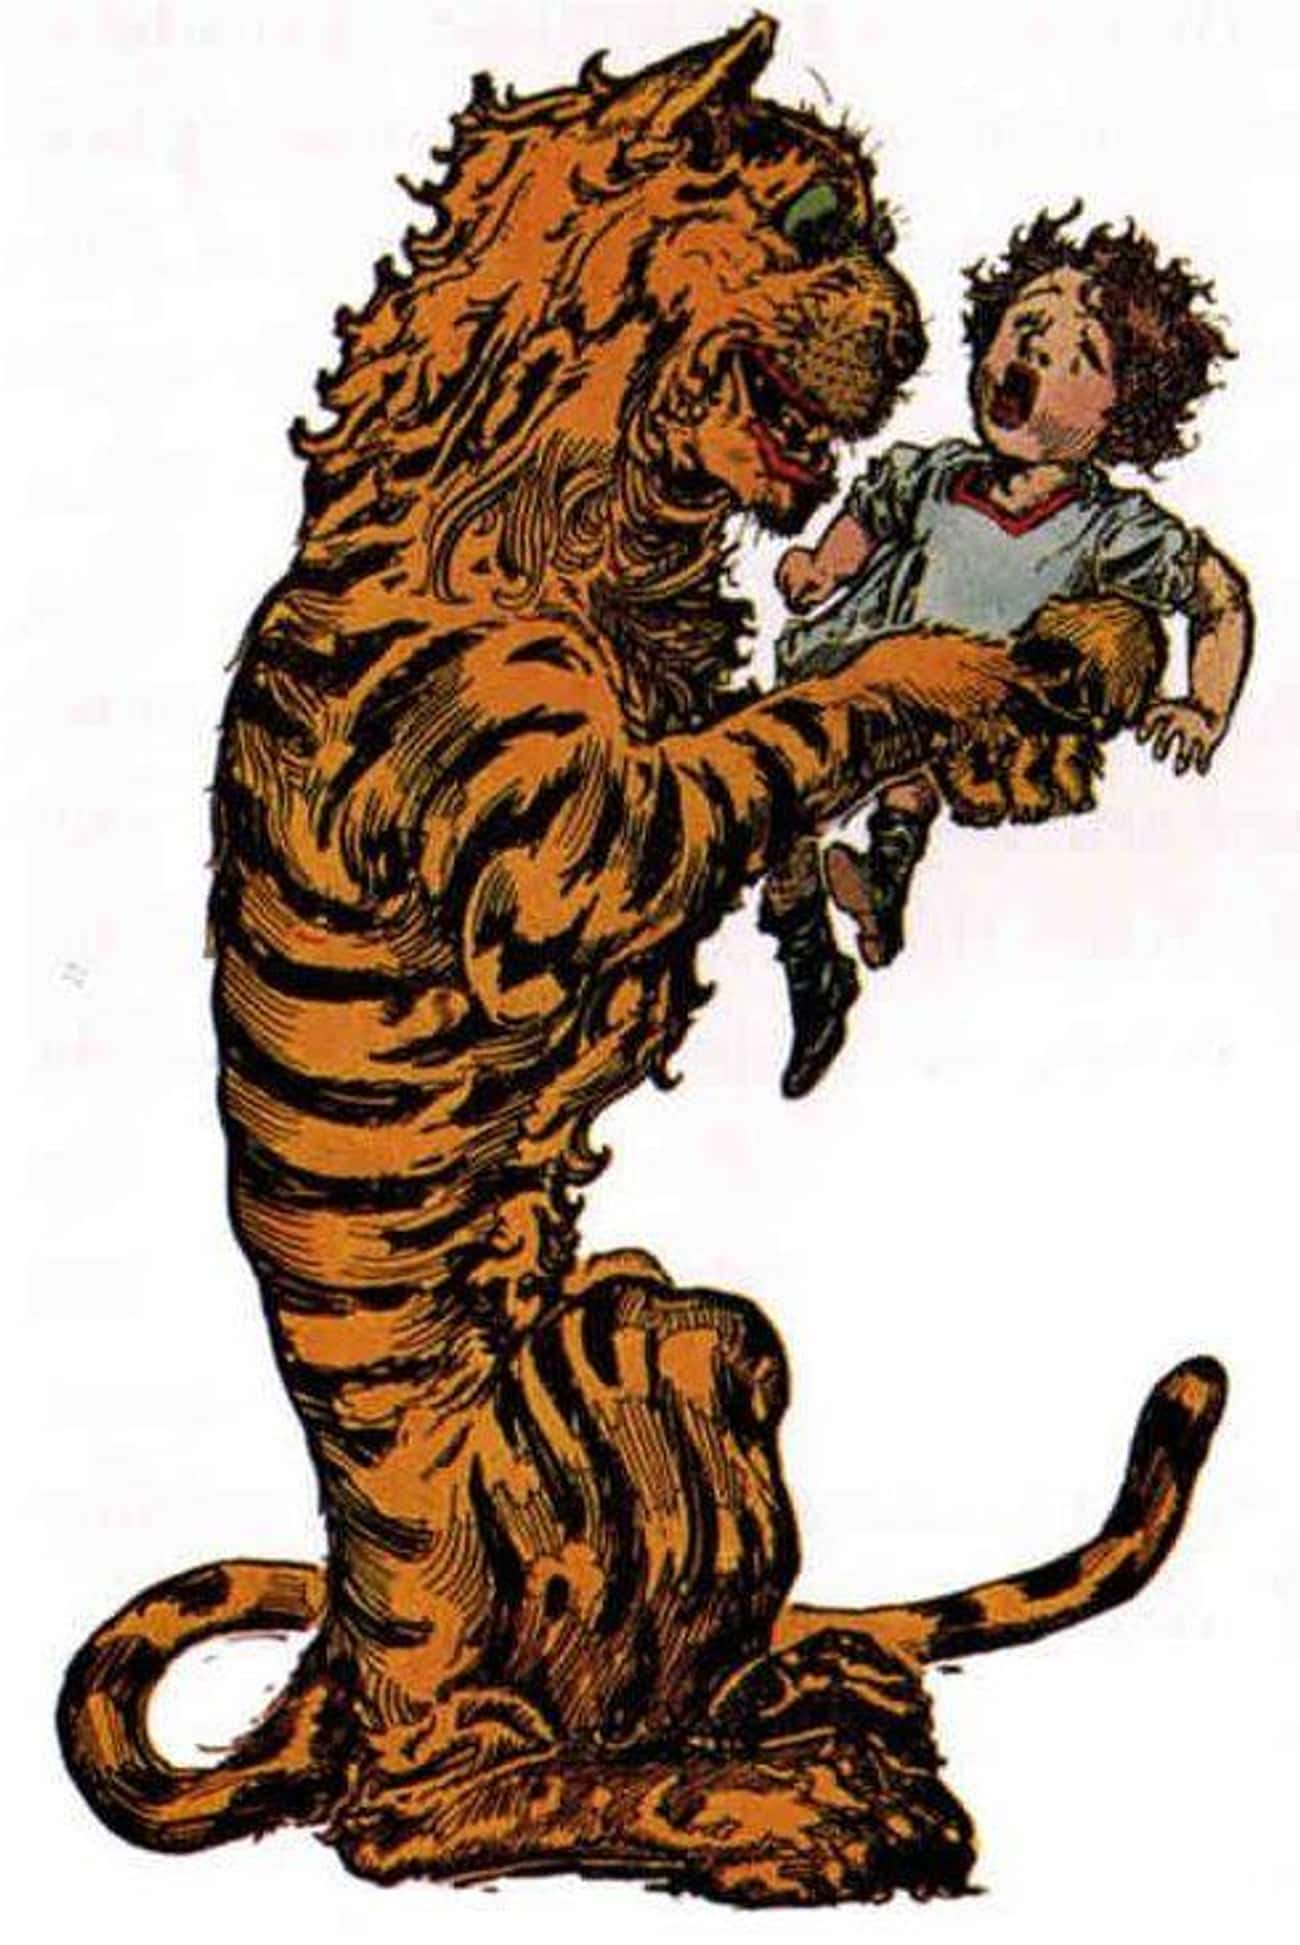 The Hungry Tiger is listed (or ranked) 3 on the list The Weirdest, Most Disturbing Creatures In The 'Wizard Of Oz' Series